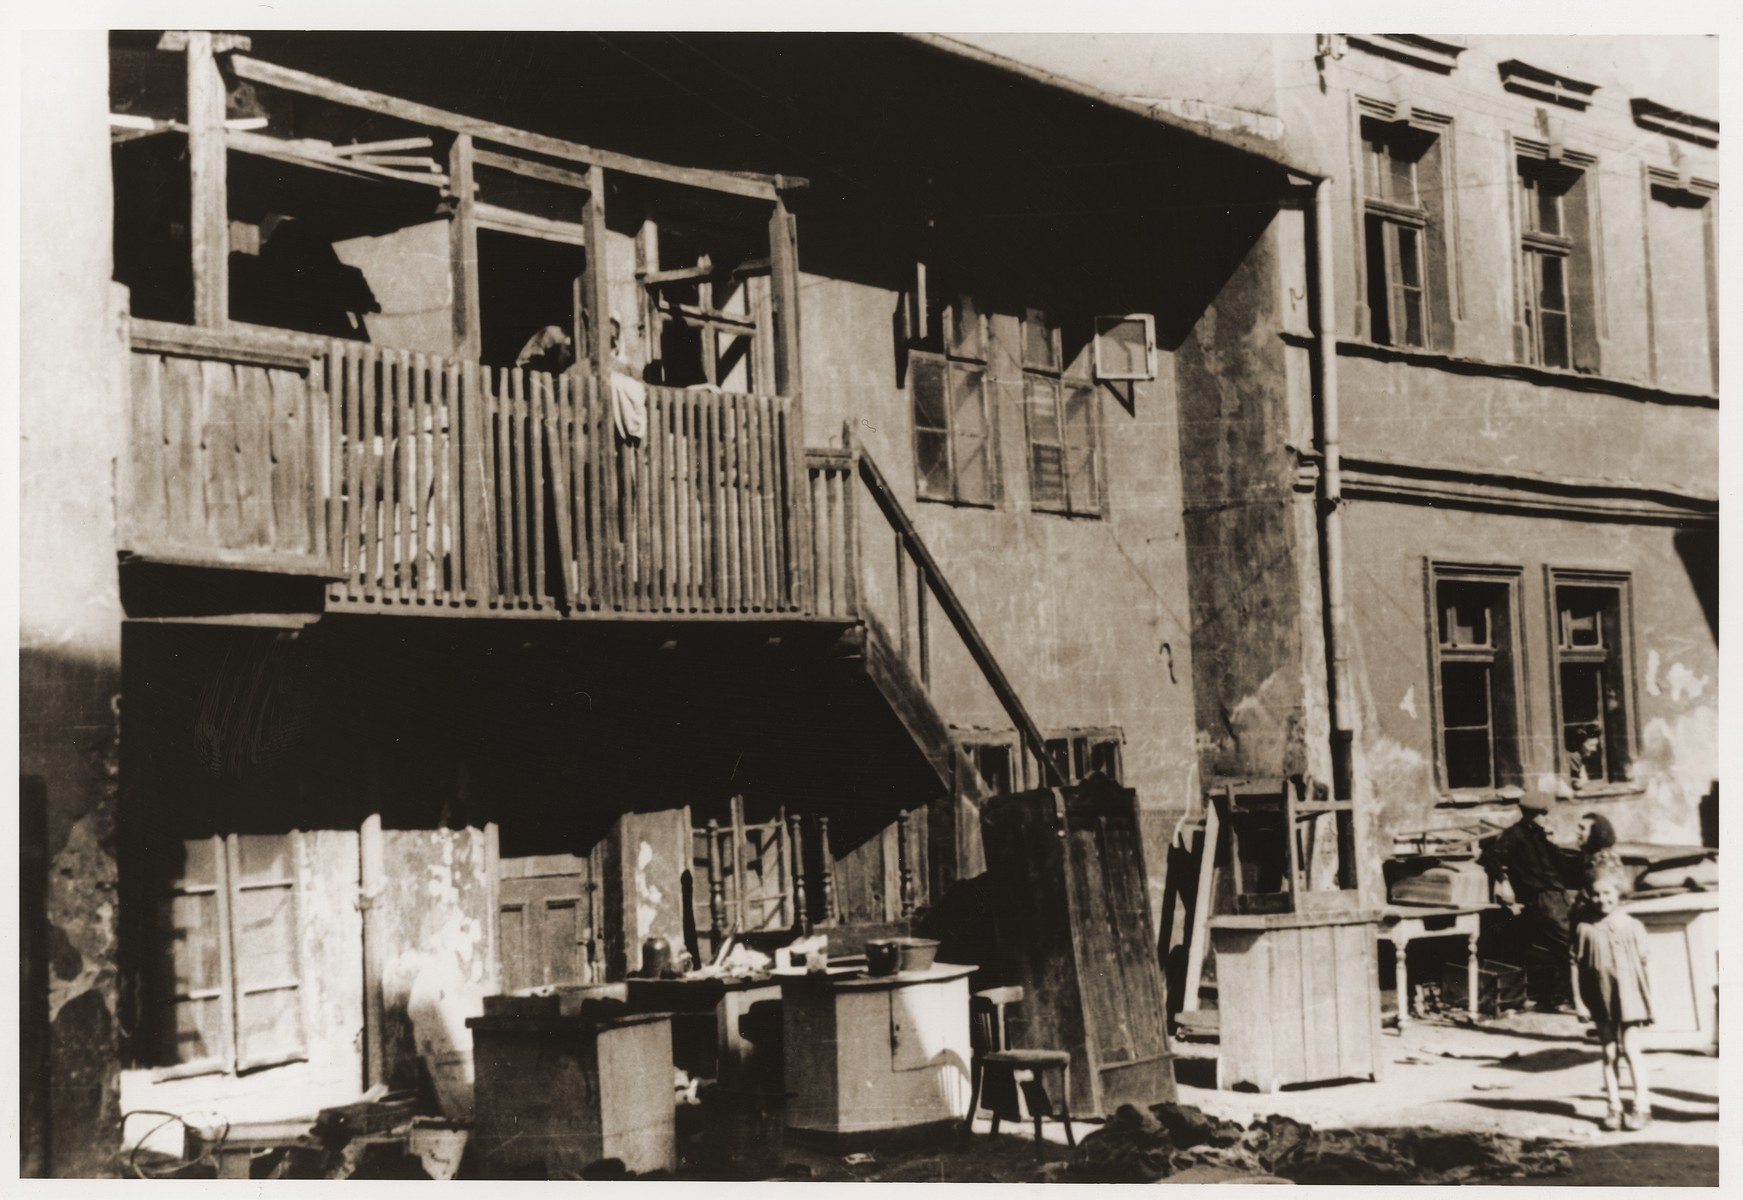 Household furnishings line the courtyard outside Jewish homes in the ghetto.